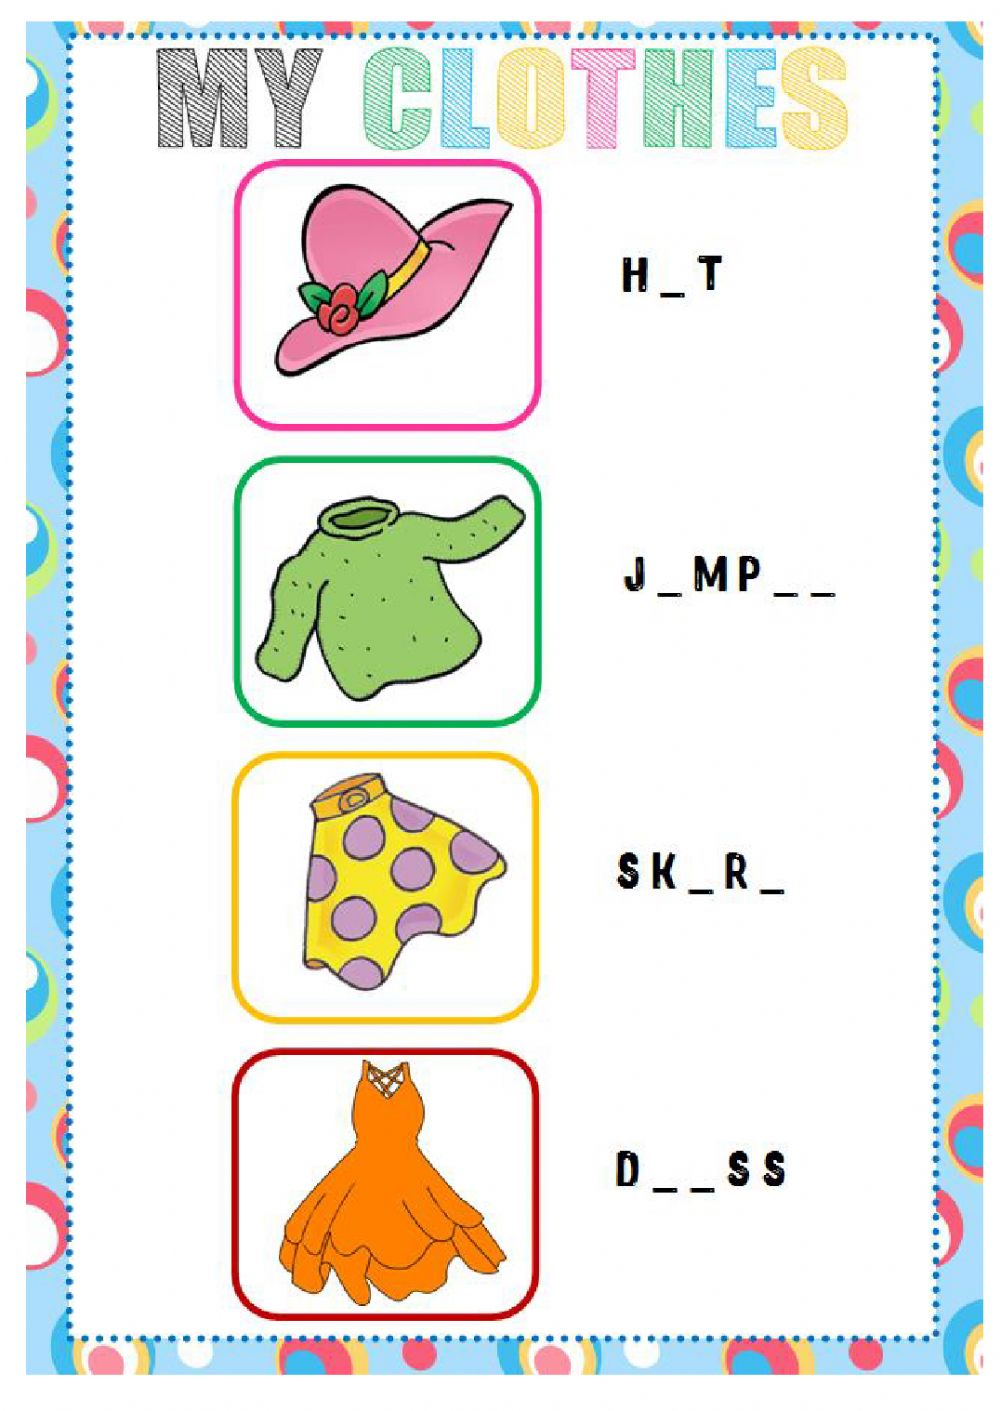 Topic Discrimination Wall Words Large besides Elements Of Art Texture Hand Out Textures Pinterest Art Img For Art Worksheets For Elementary At Art Worksheets For Elementary likewise Image Width   Height   Version also Pauta also Original. on 1st grade spelling worksheets 2